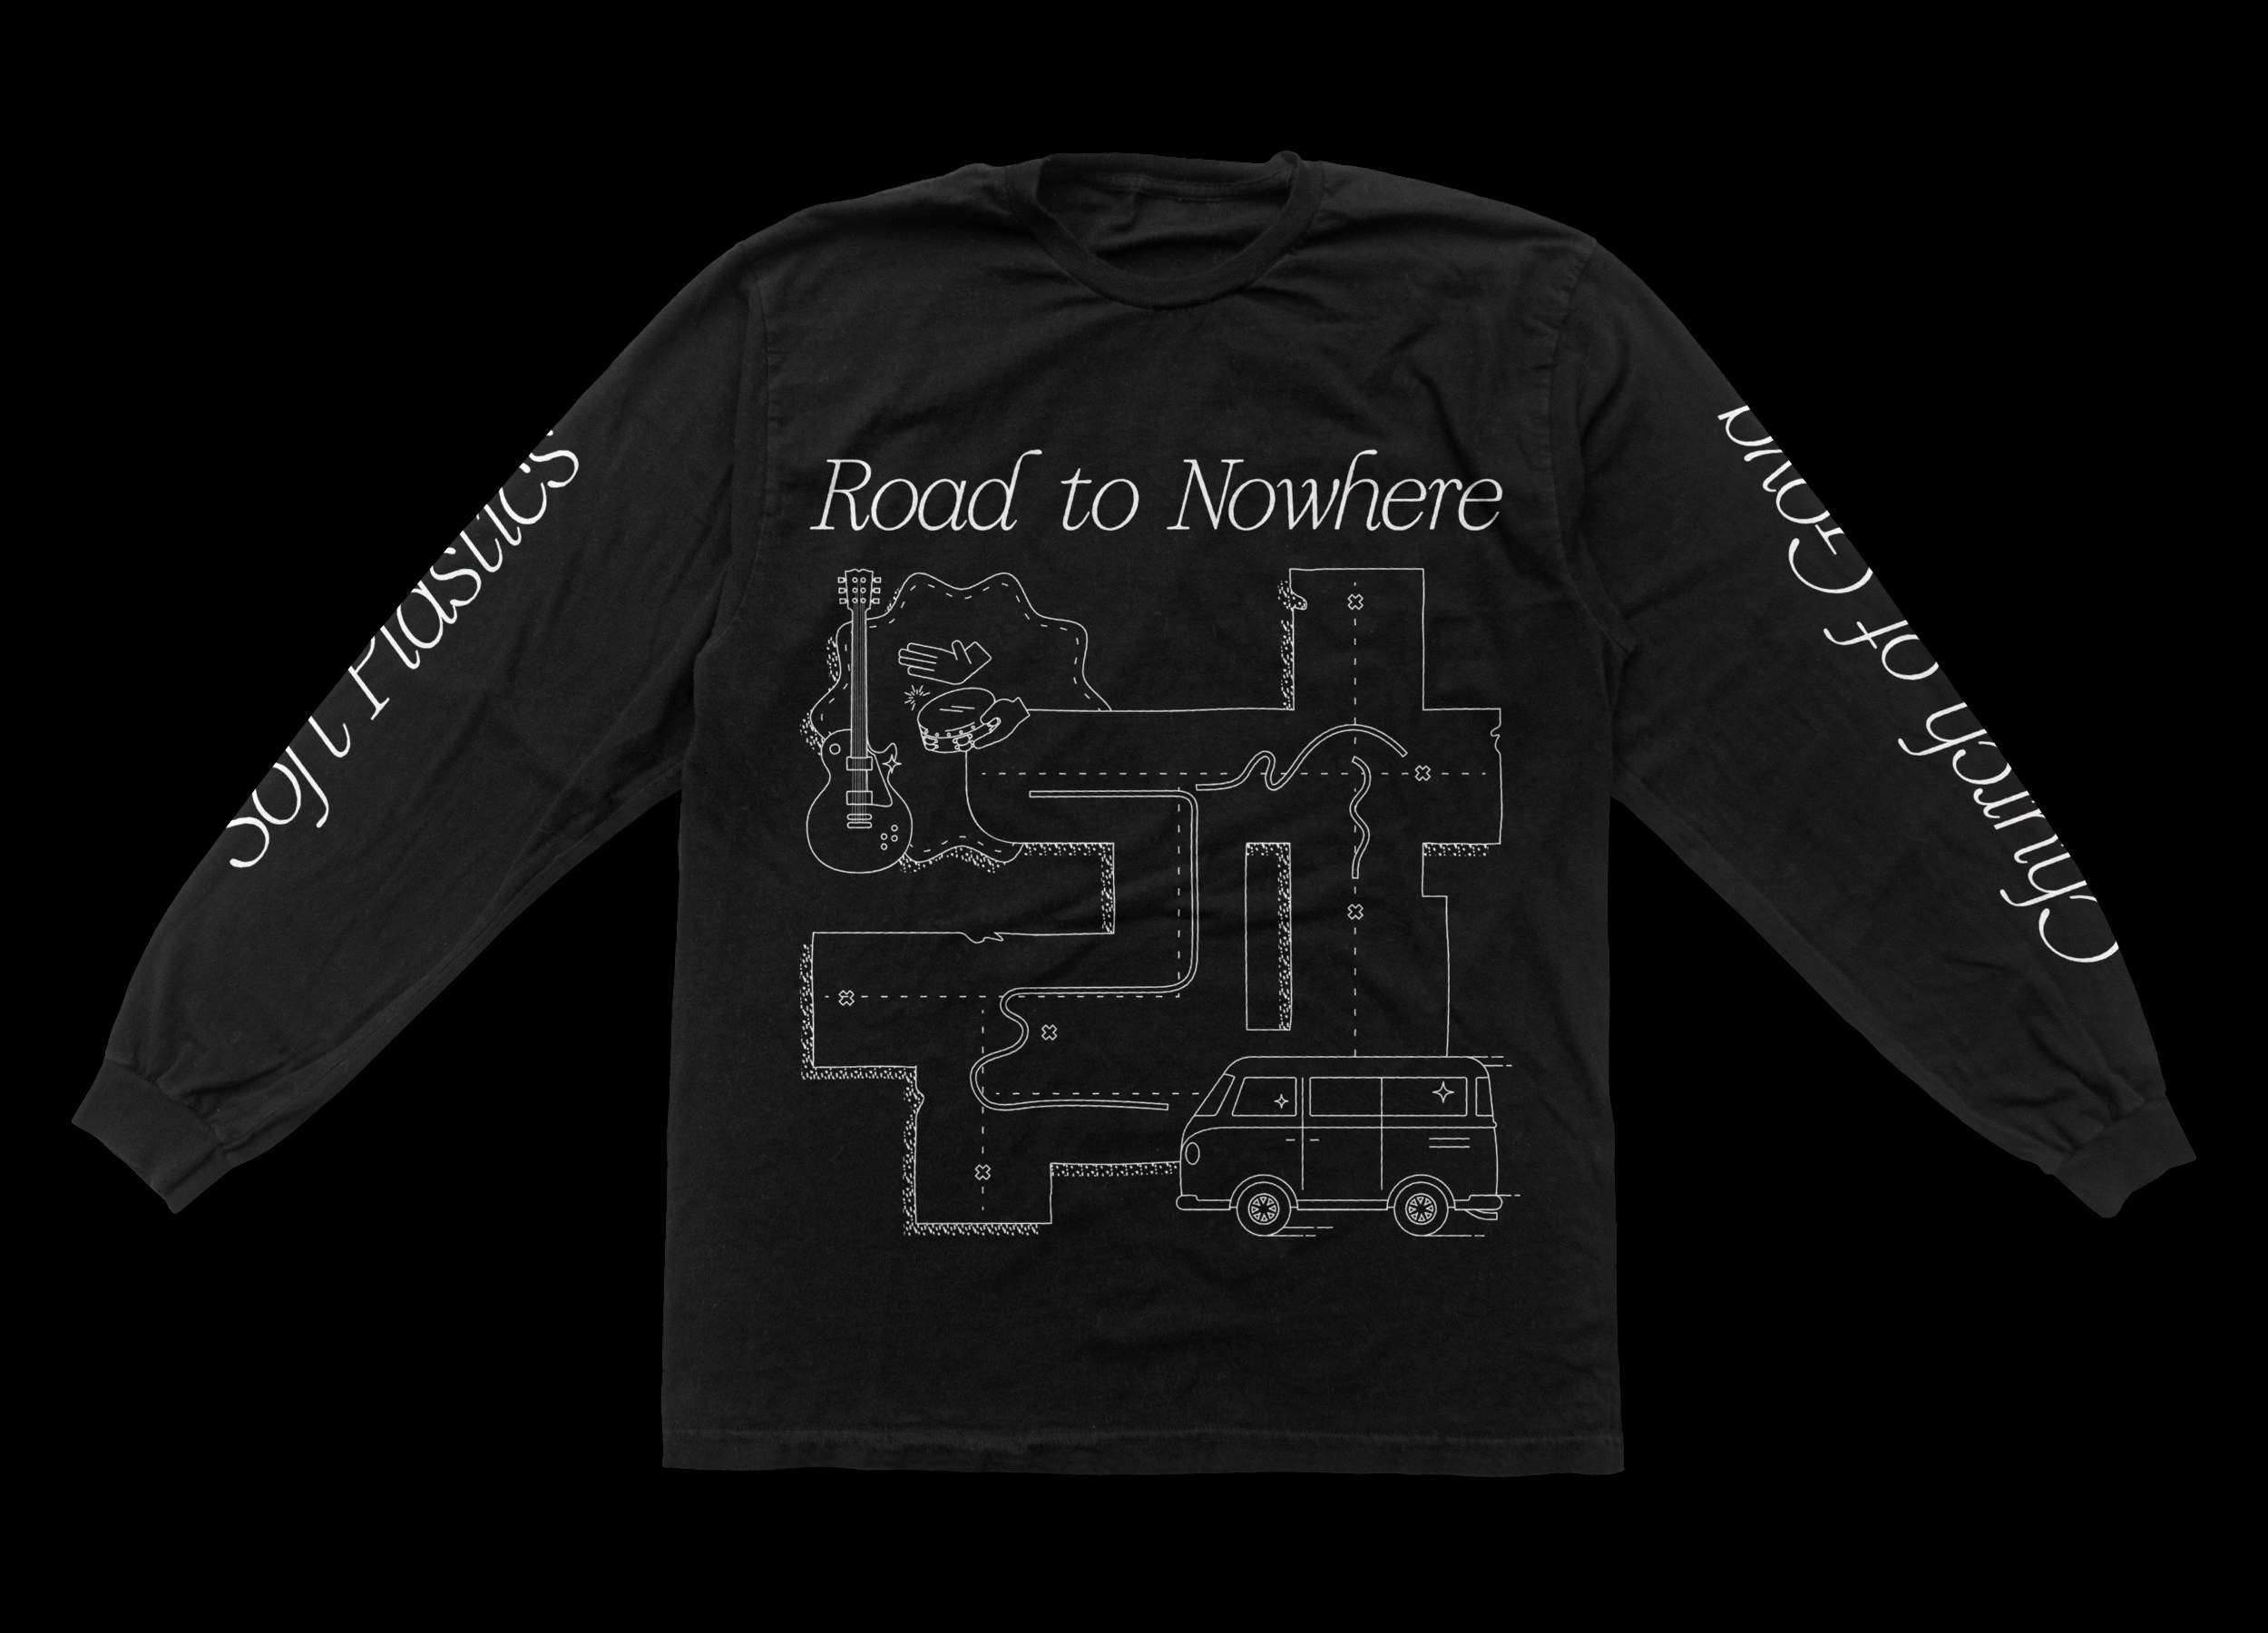 Road to Nowhere long sleeved T-shirt design in black